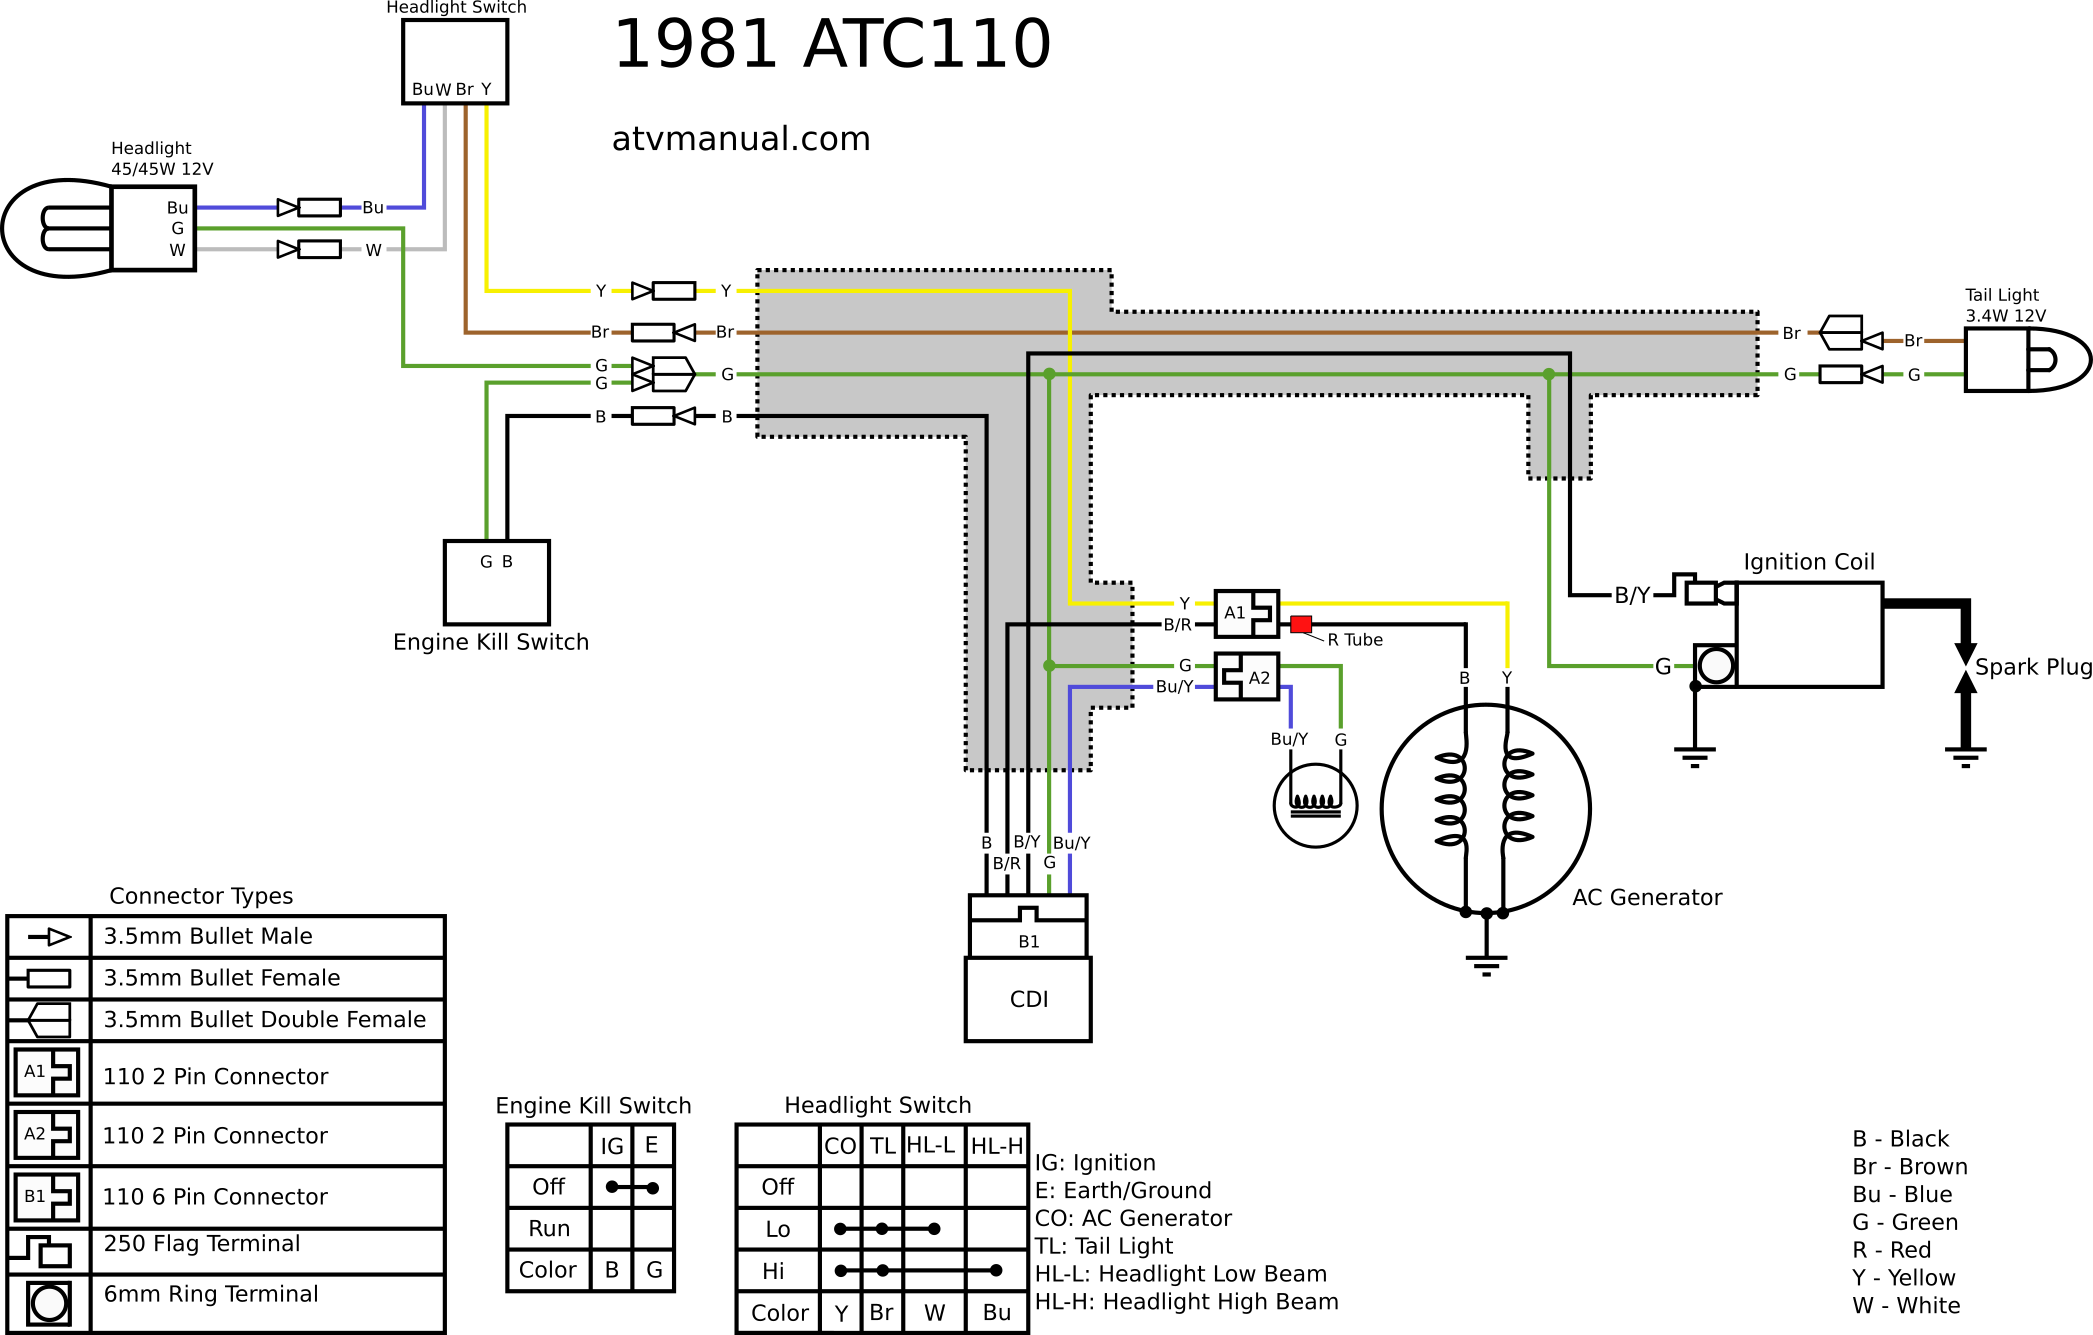 1981 ATC110 Wire Diagram